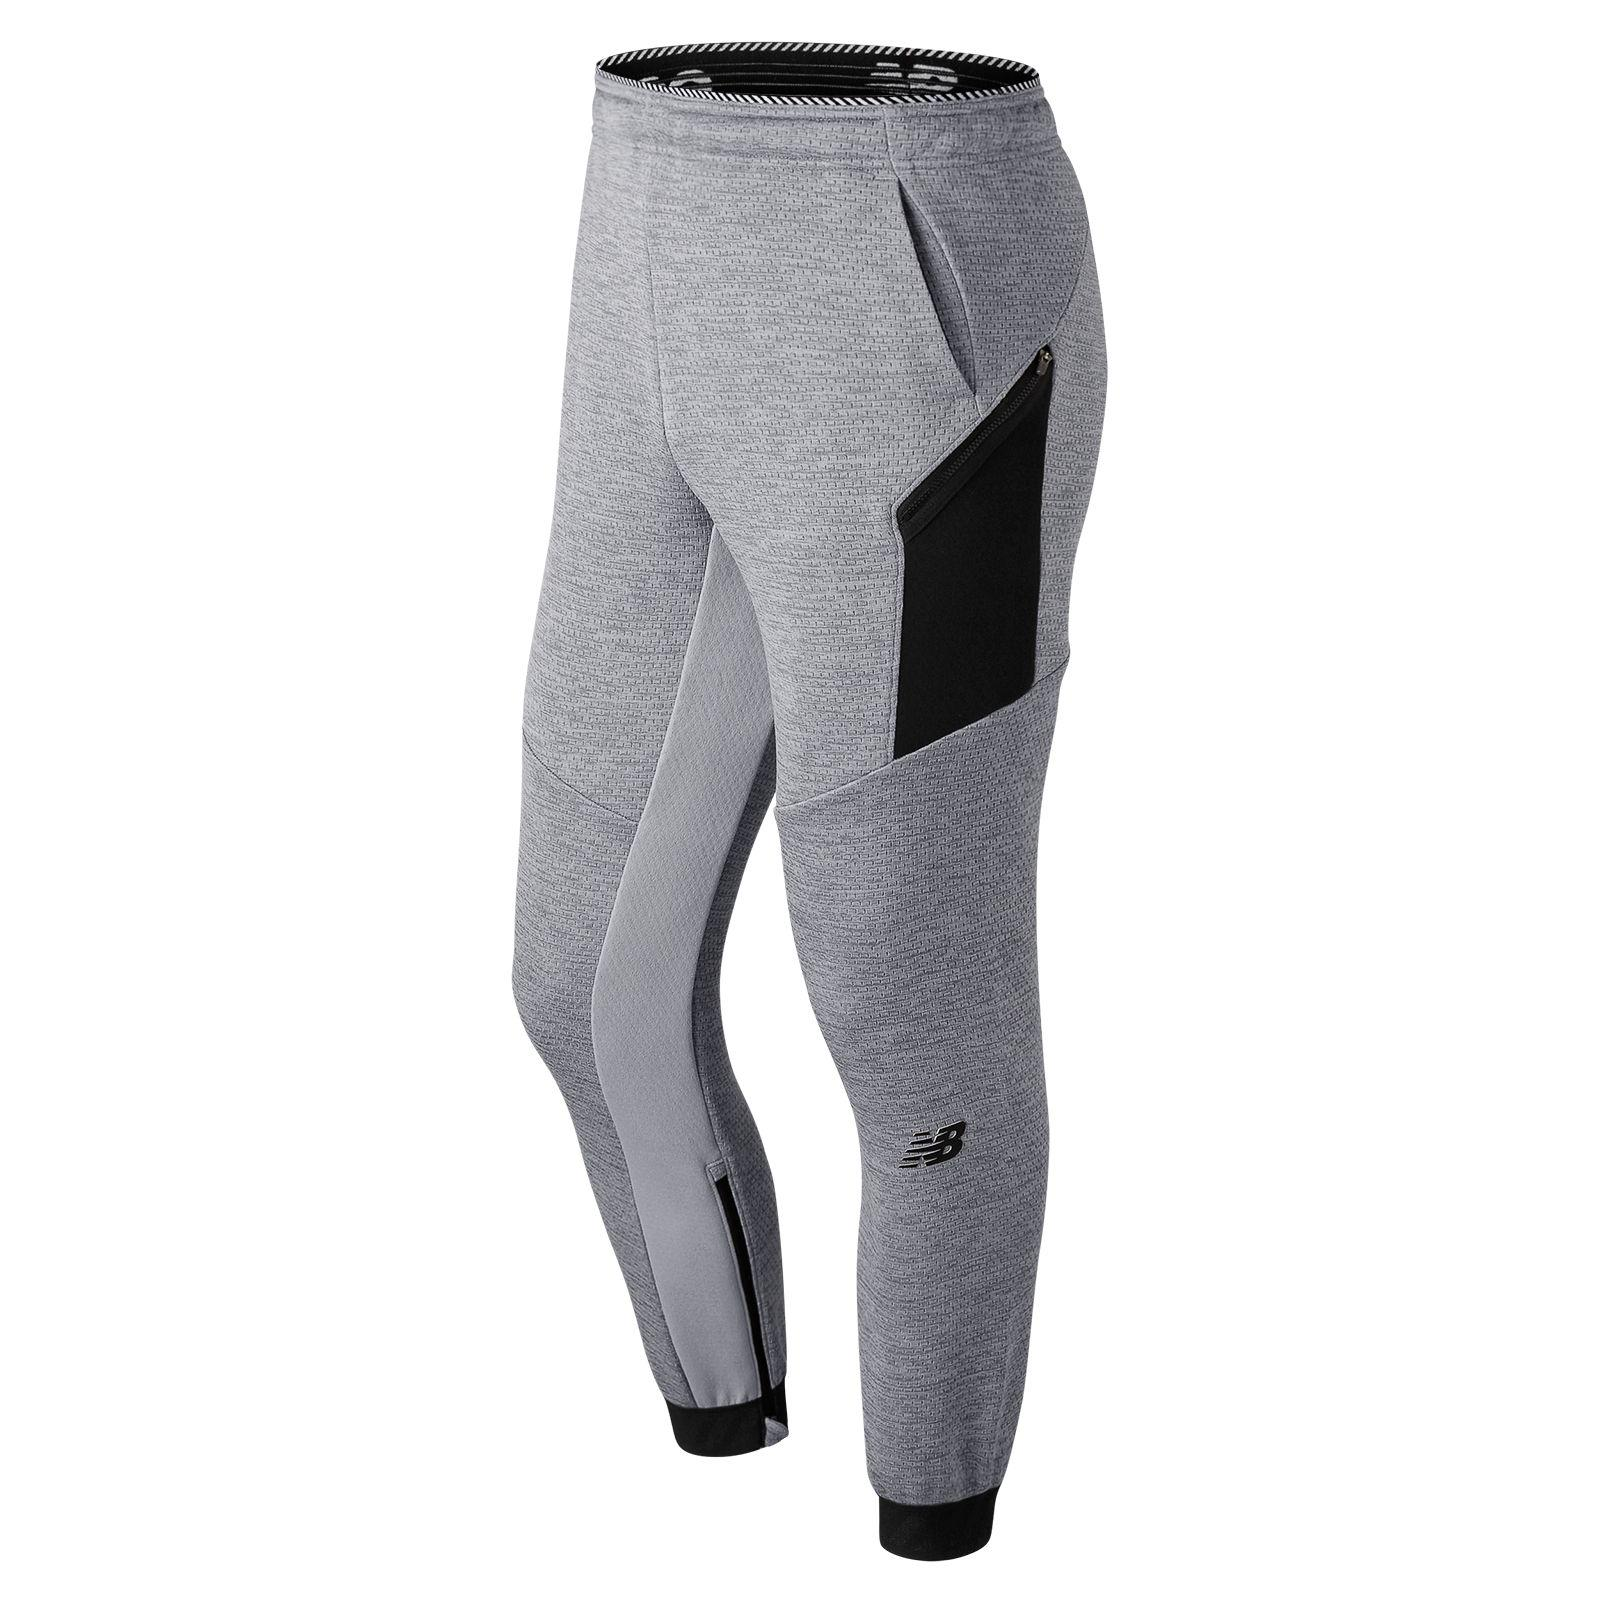 99b89bb517d4b New Balance R.w.t. Lightweight Double Knit Pant in Gray for Men - Lyst